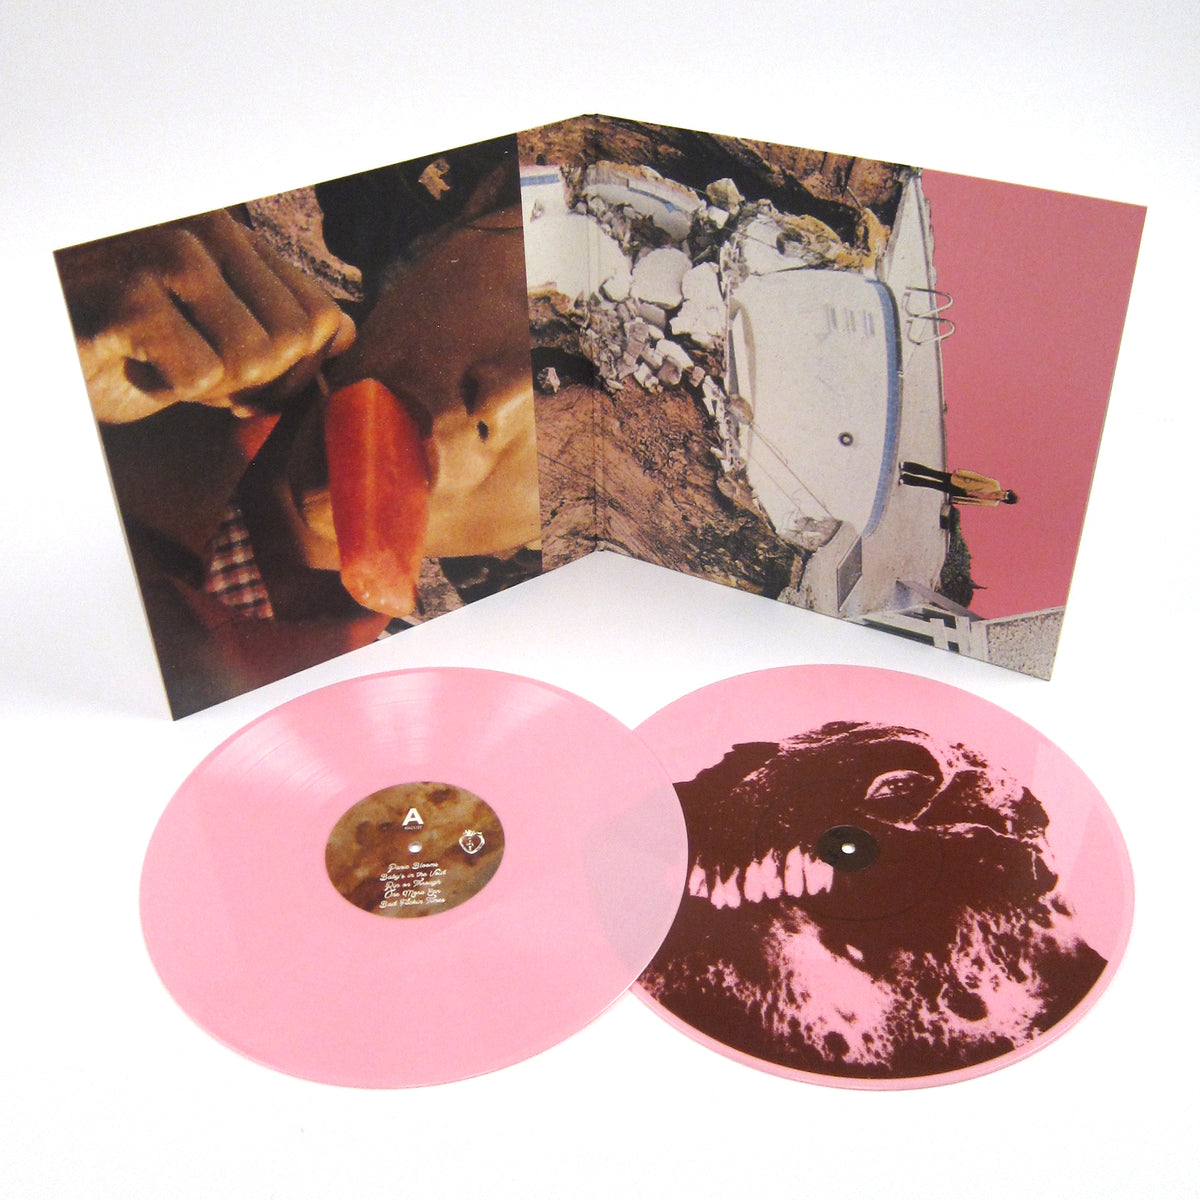 Black Moth Super Rainbow: Panic Blooms (Pink Colored Vinyl) Vinyl 2LP